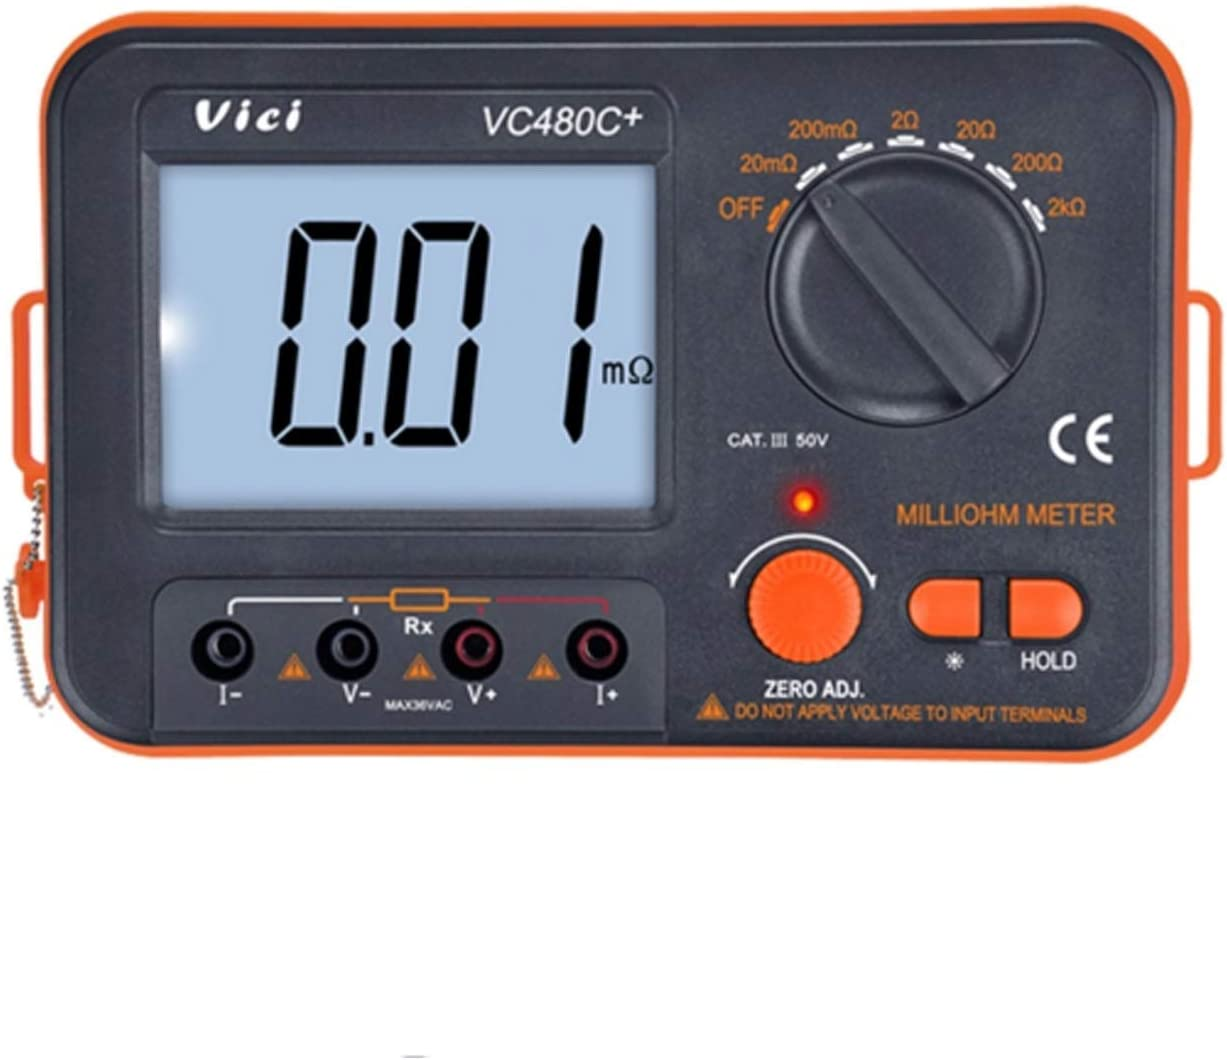 ZKS-KS Digital millioh Meter 3 Max 50% OFF 1 2 Clearance SALE! Limited time! Backligh 4 with LCD Test Wire